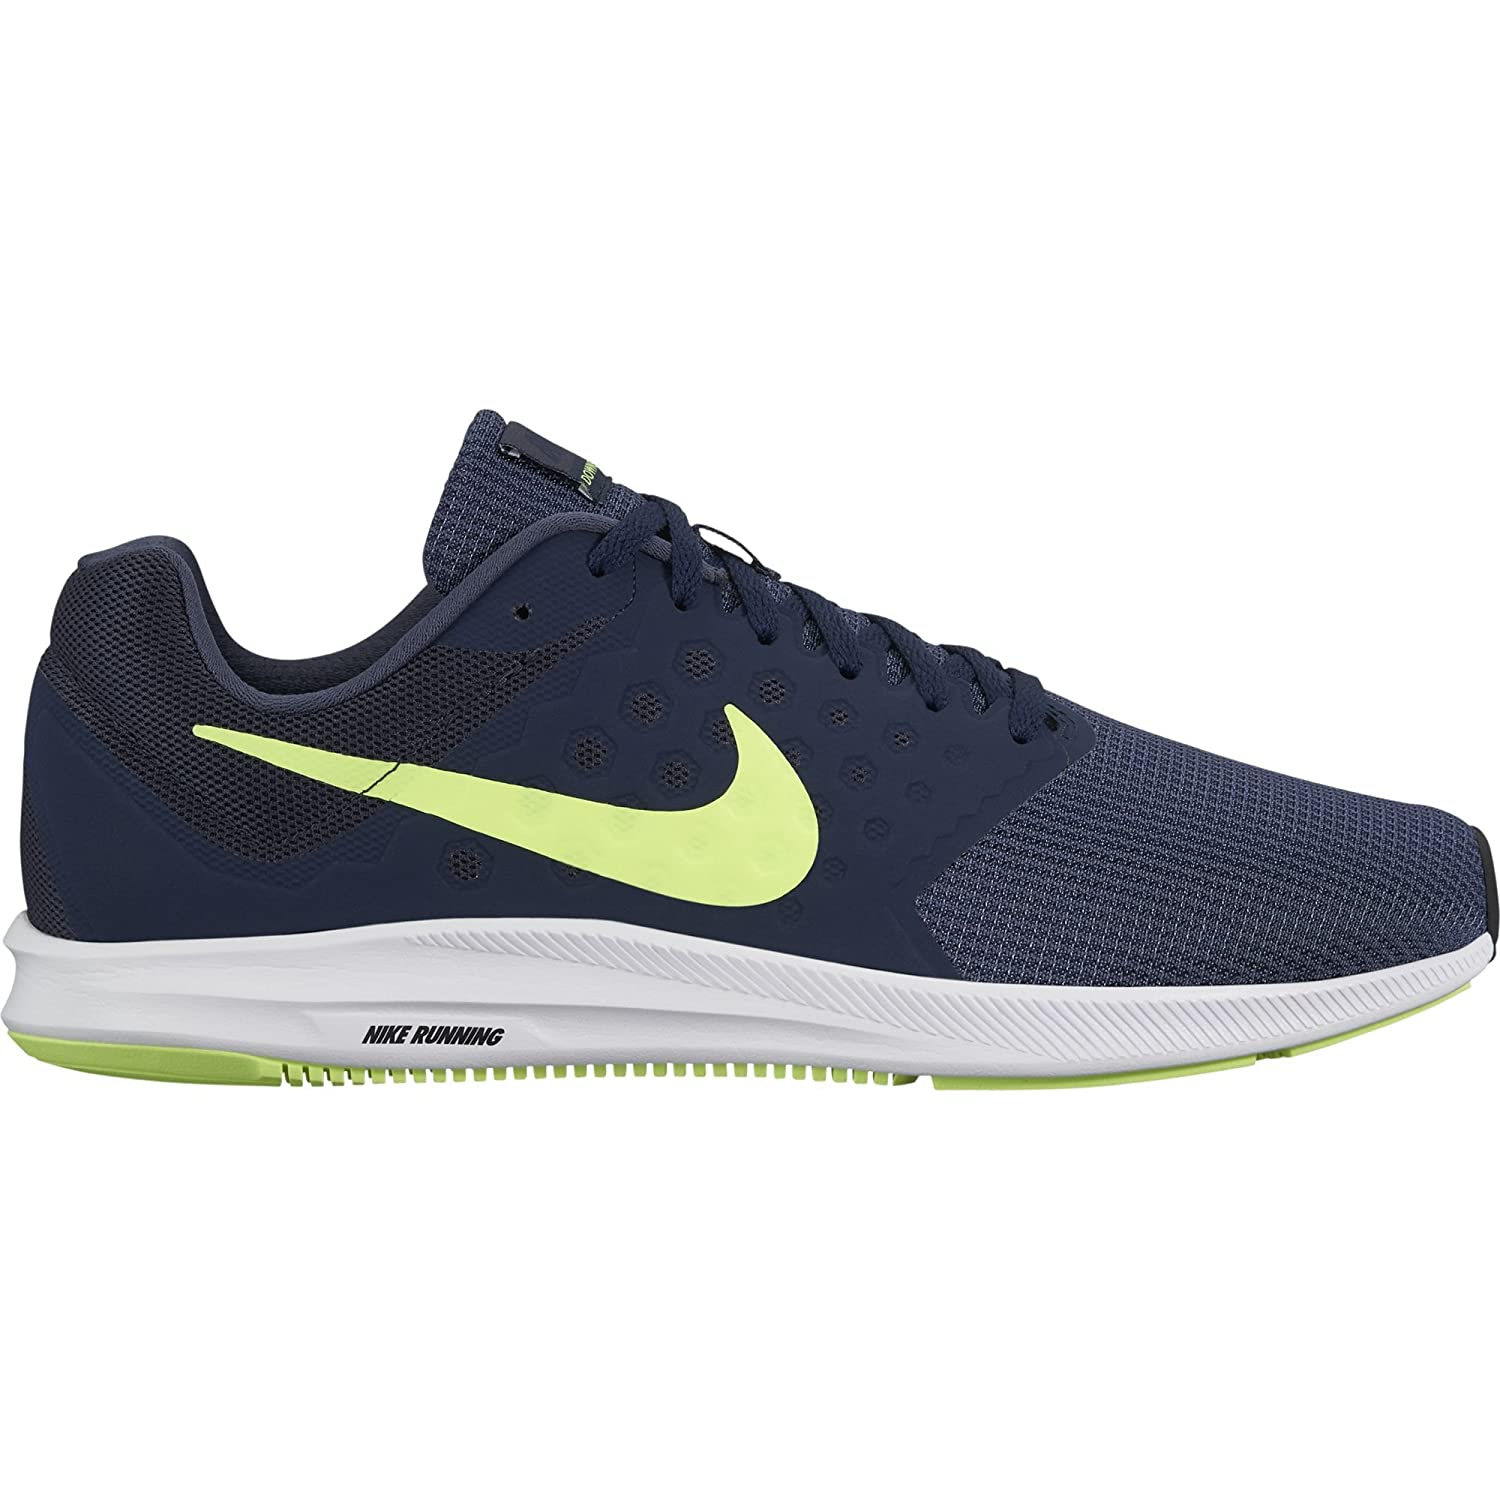 709569cab401 Nike Men s Downshifter 7 Running Shoe Thunder Blue Volt Glow Obsidian Black  Size 11.5 M US  Buy Online at Low Prices in India - Amazon.in